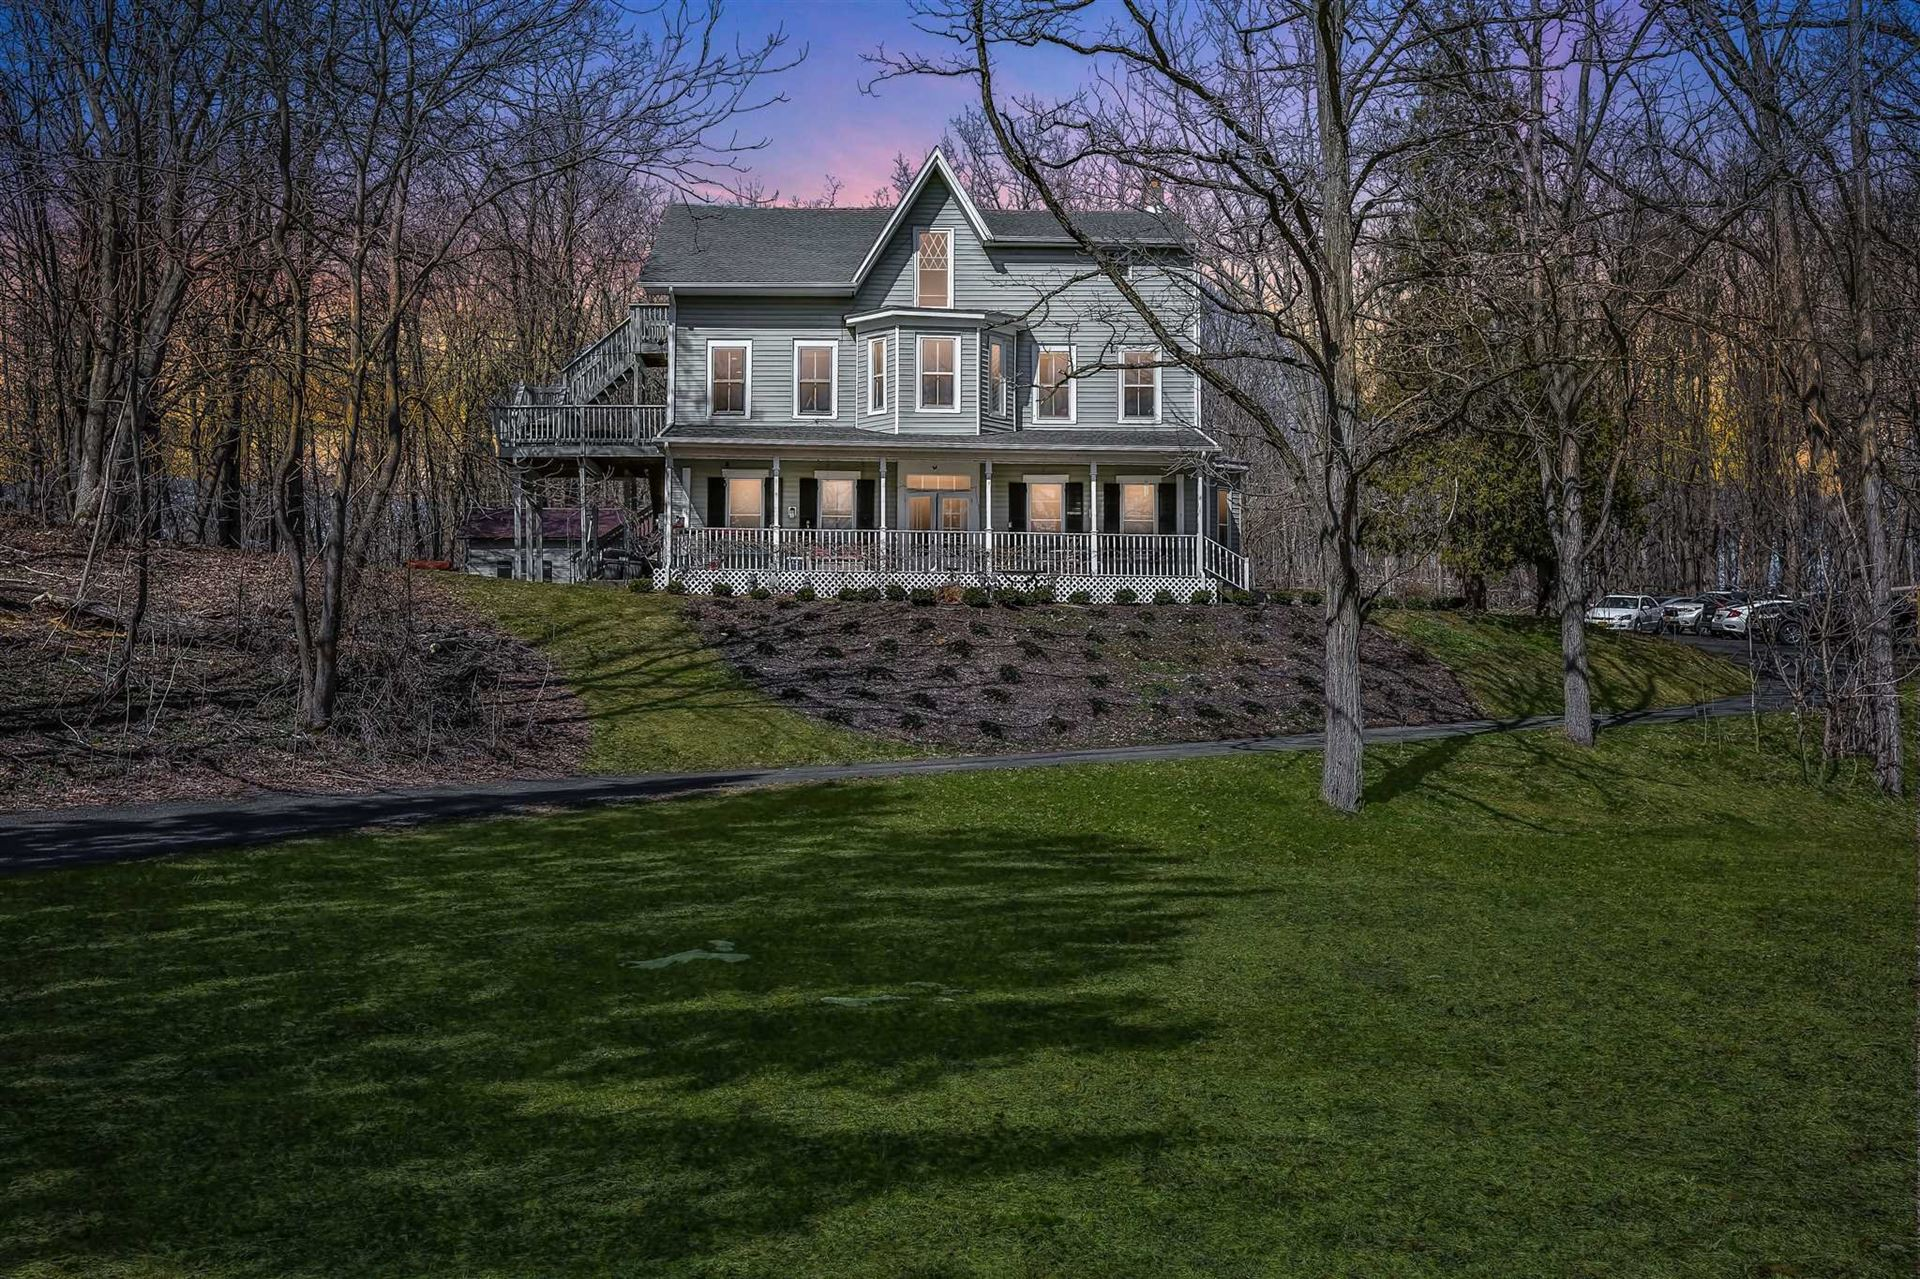 2419 ROUTE 9D, Wappingers Falls, NY 12590 - #: 399106